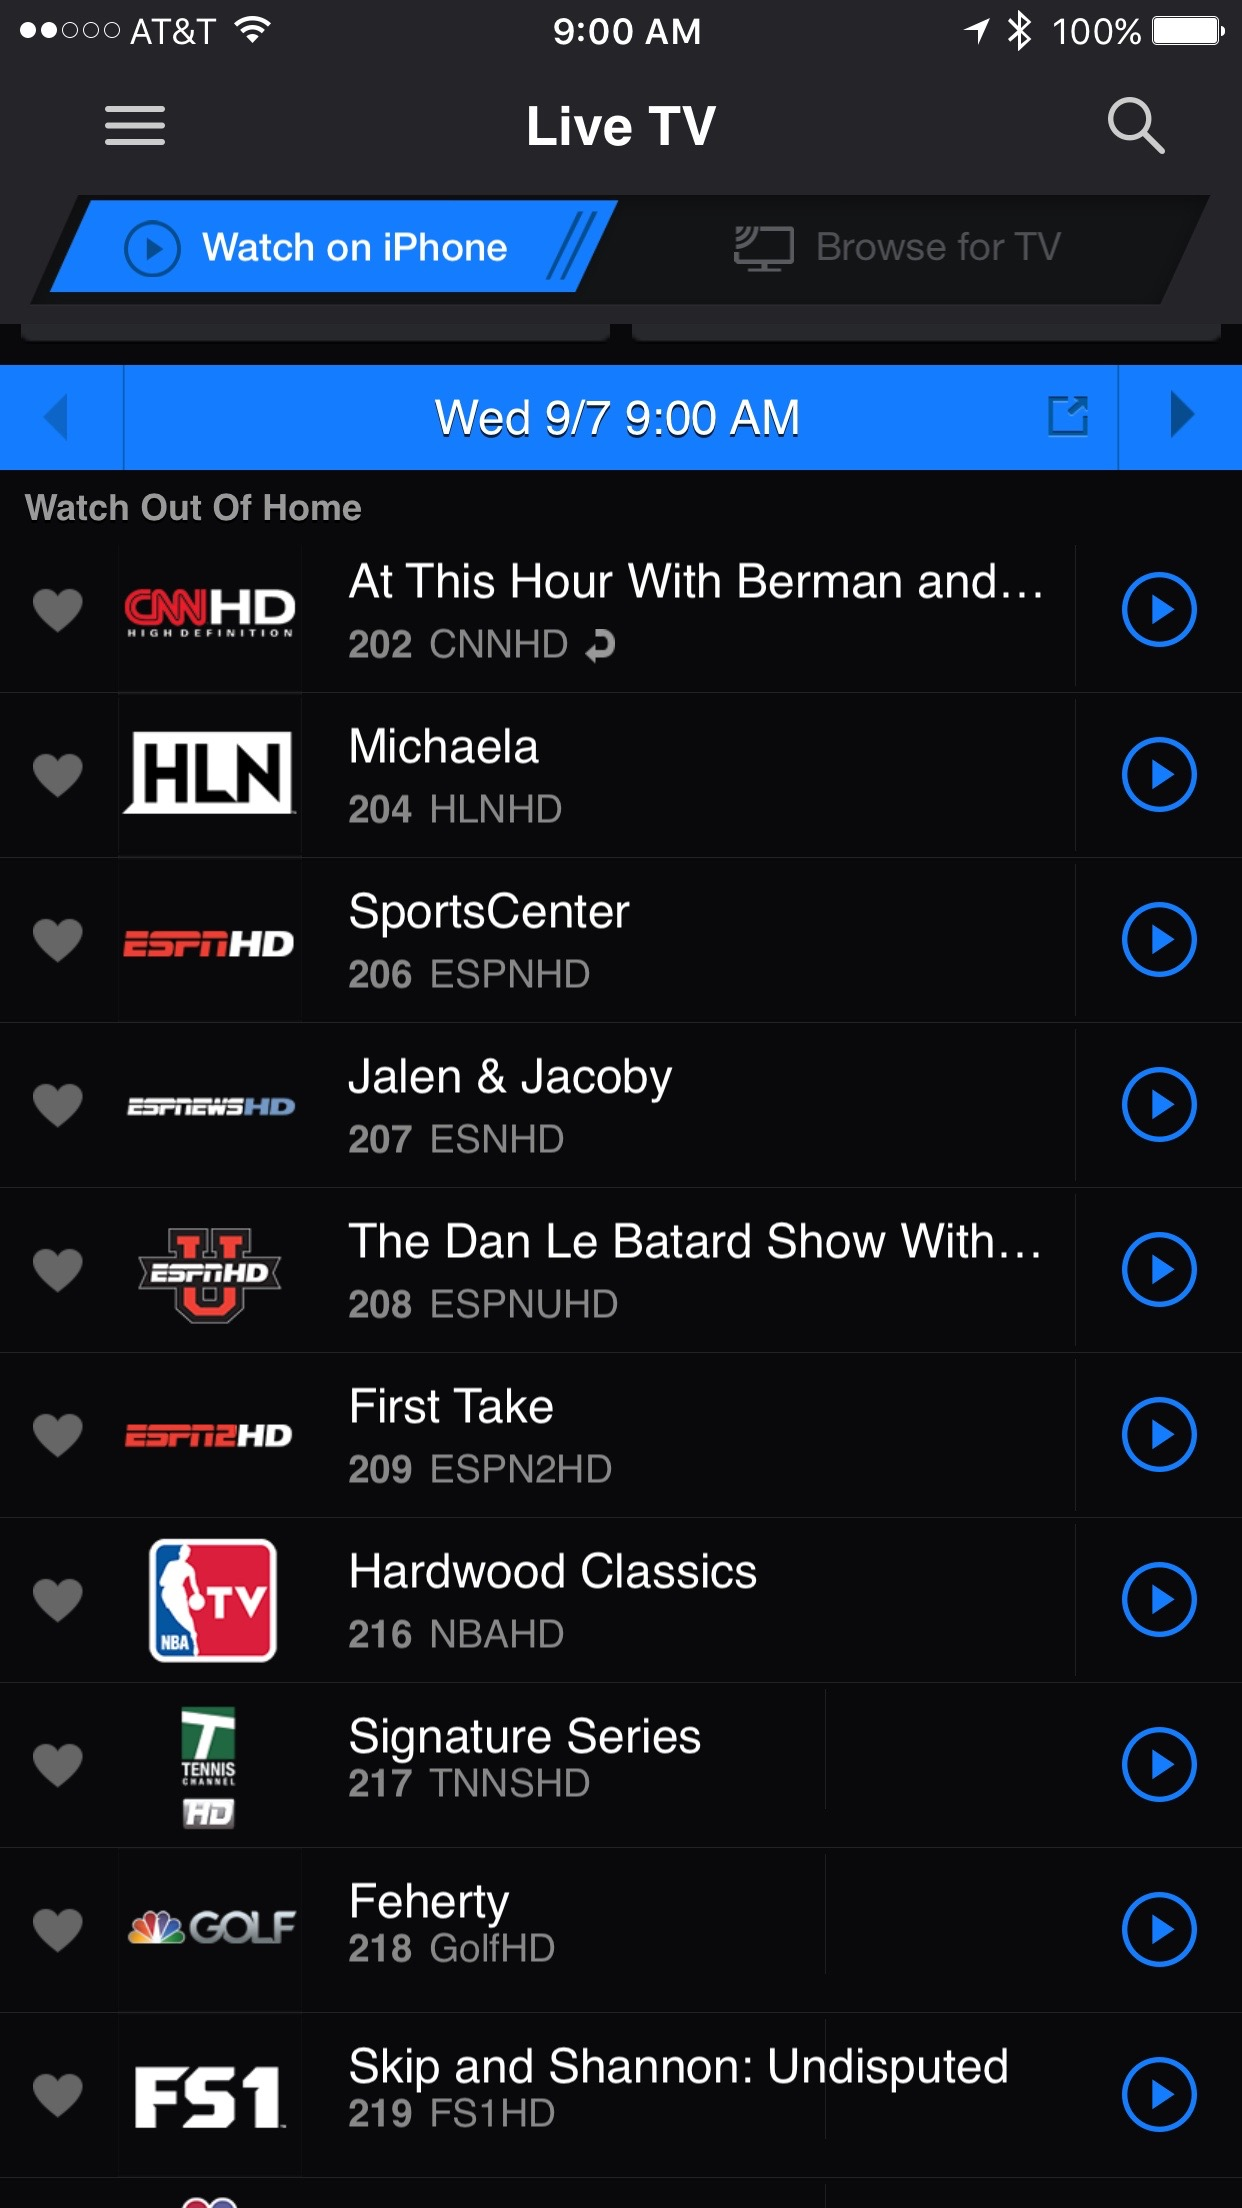 Phone Can I Watch Live Tv On My Android Phone directv expands live mobile streaming to include nearly all the dvr service is particularly interesting not only can subscribers download shows recorded a home their phone for